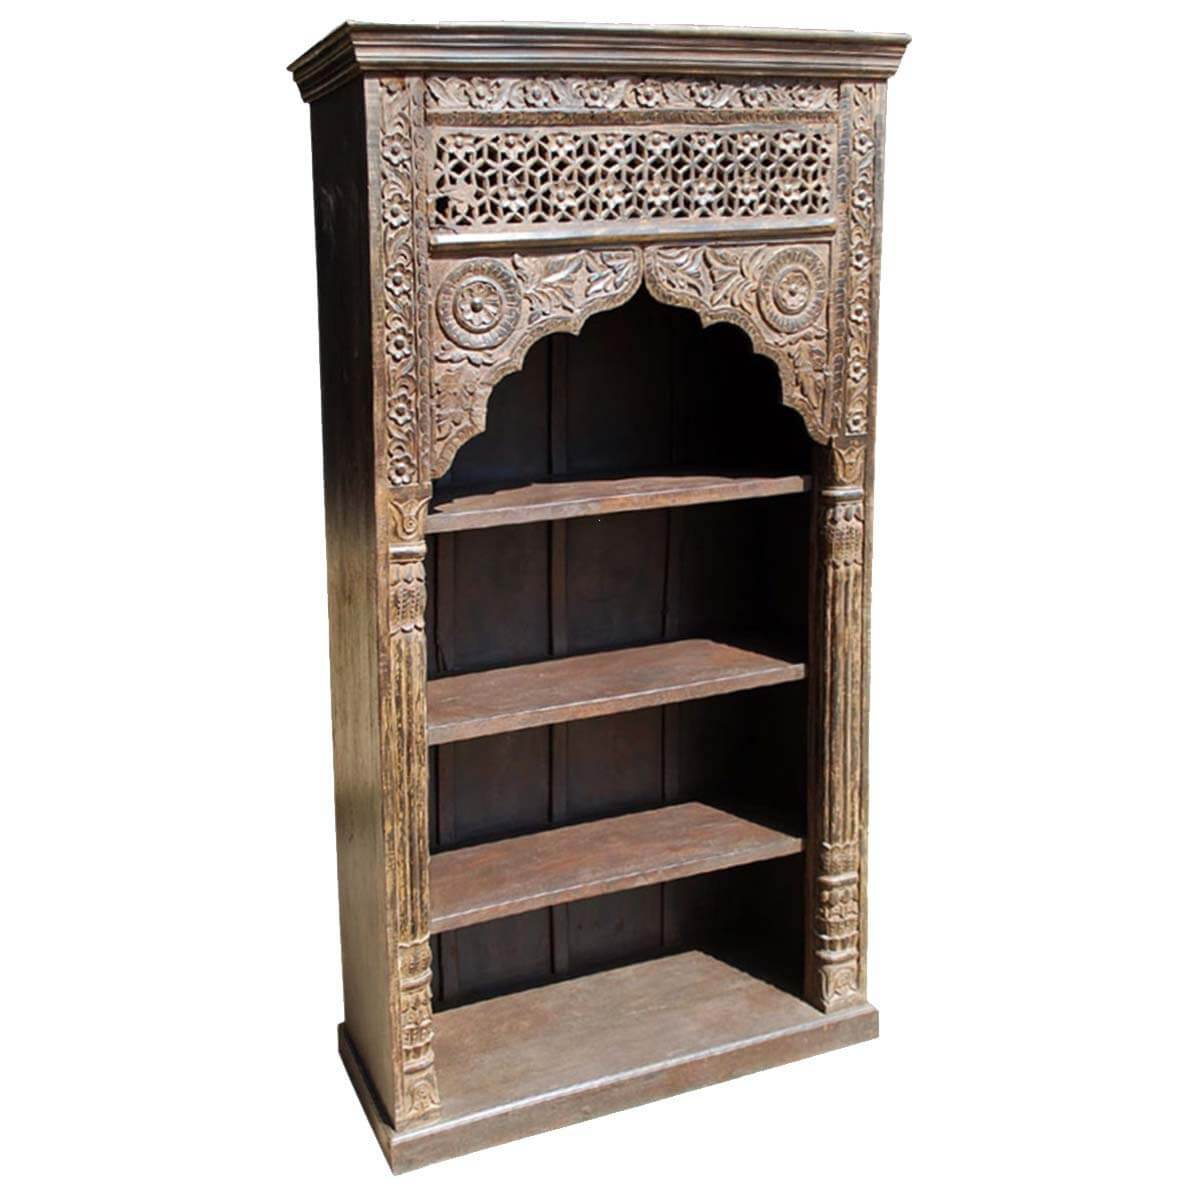 Monrovia 4 Shelf Vintage Rustic Solid Wood Arched Bookcase